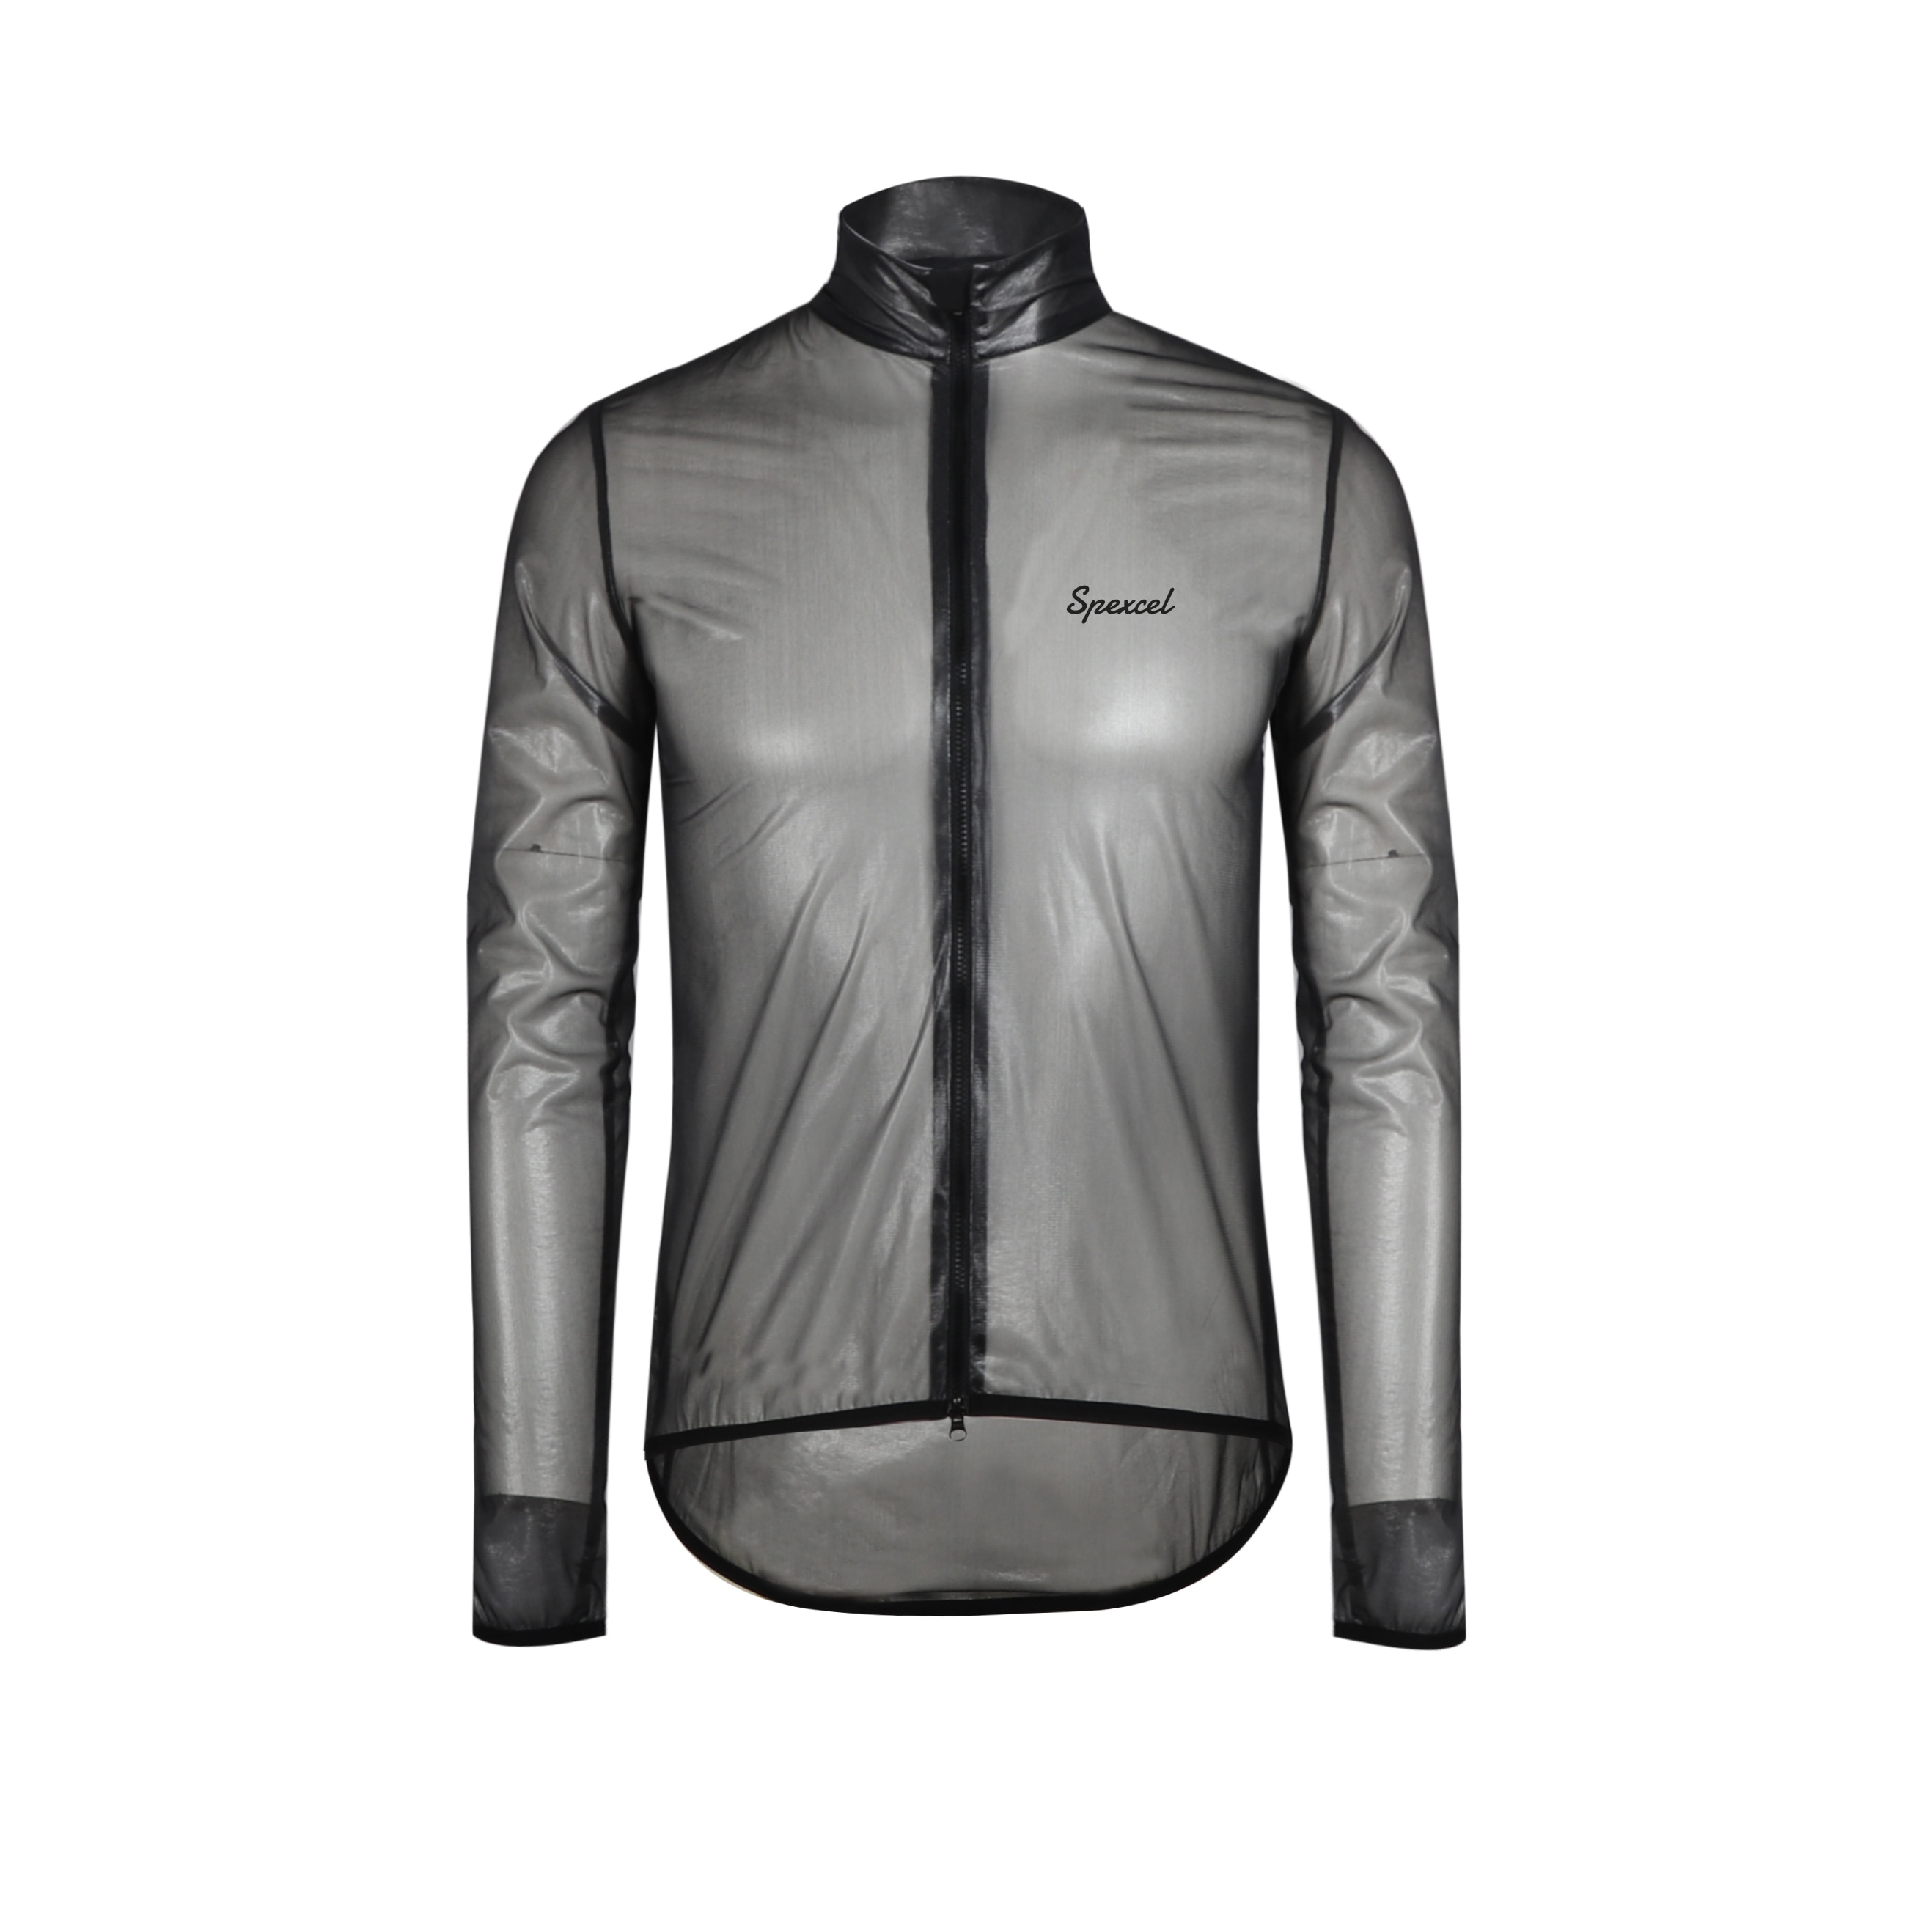 SPEXCEL 2019 classic super lightweight rain jacket windproof and waterproof cycling jacket Convenient to carry